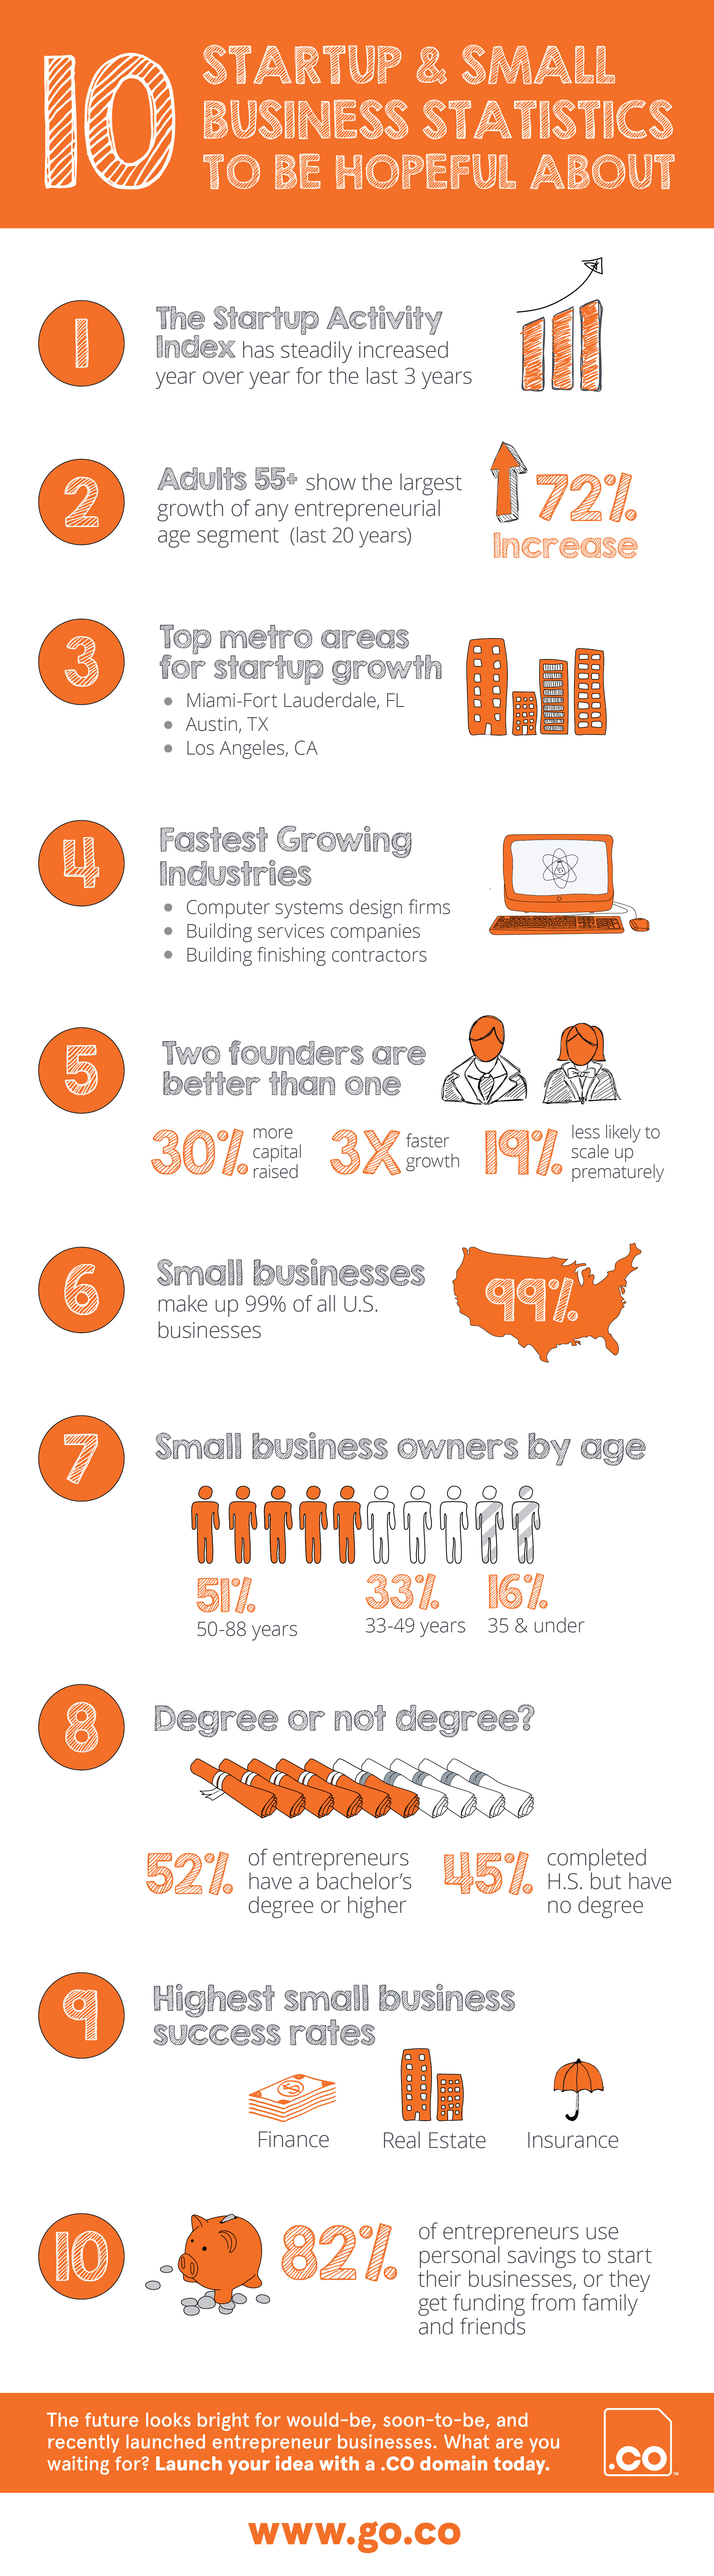 DotCO_infographic_StartUp and Small Business_v1